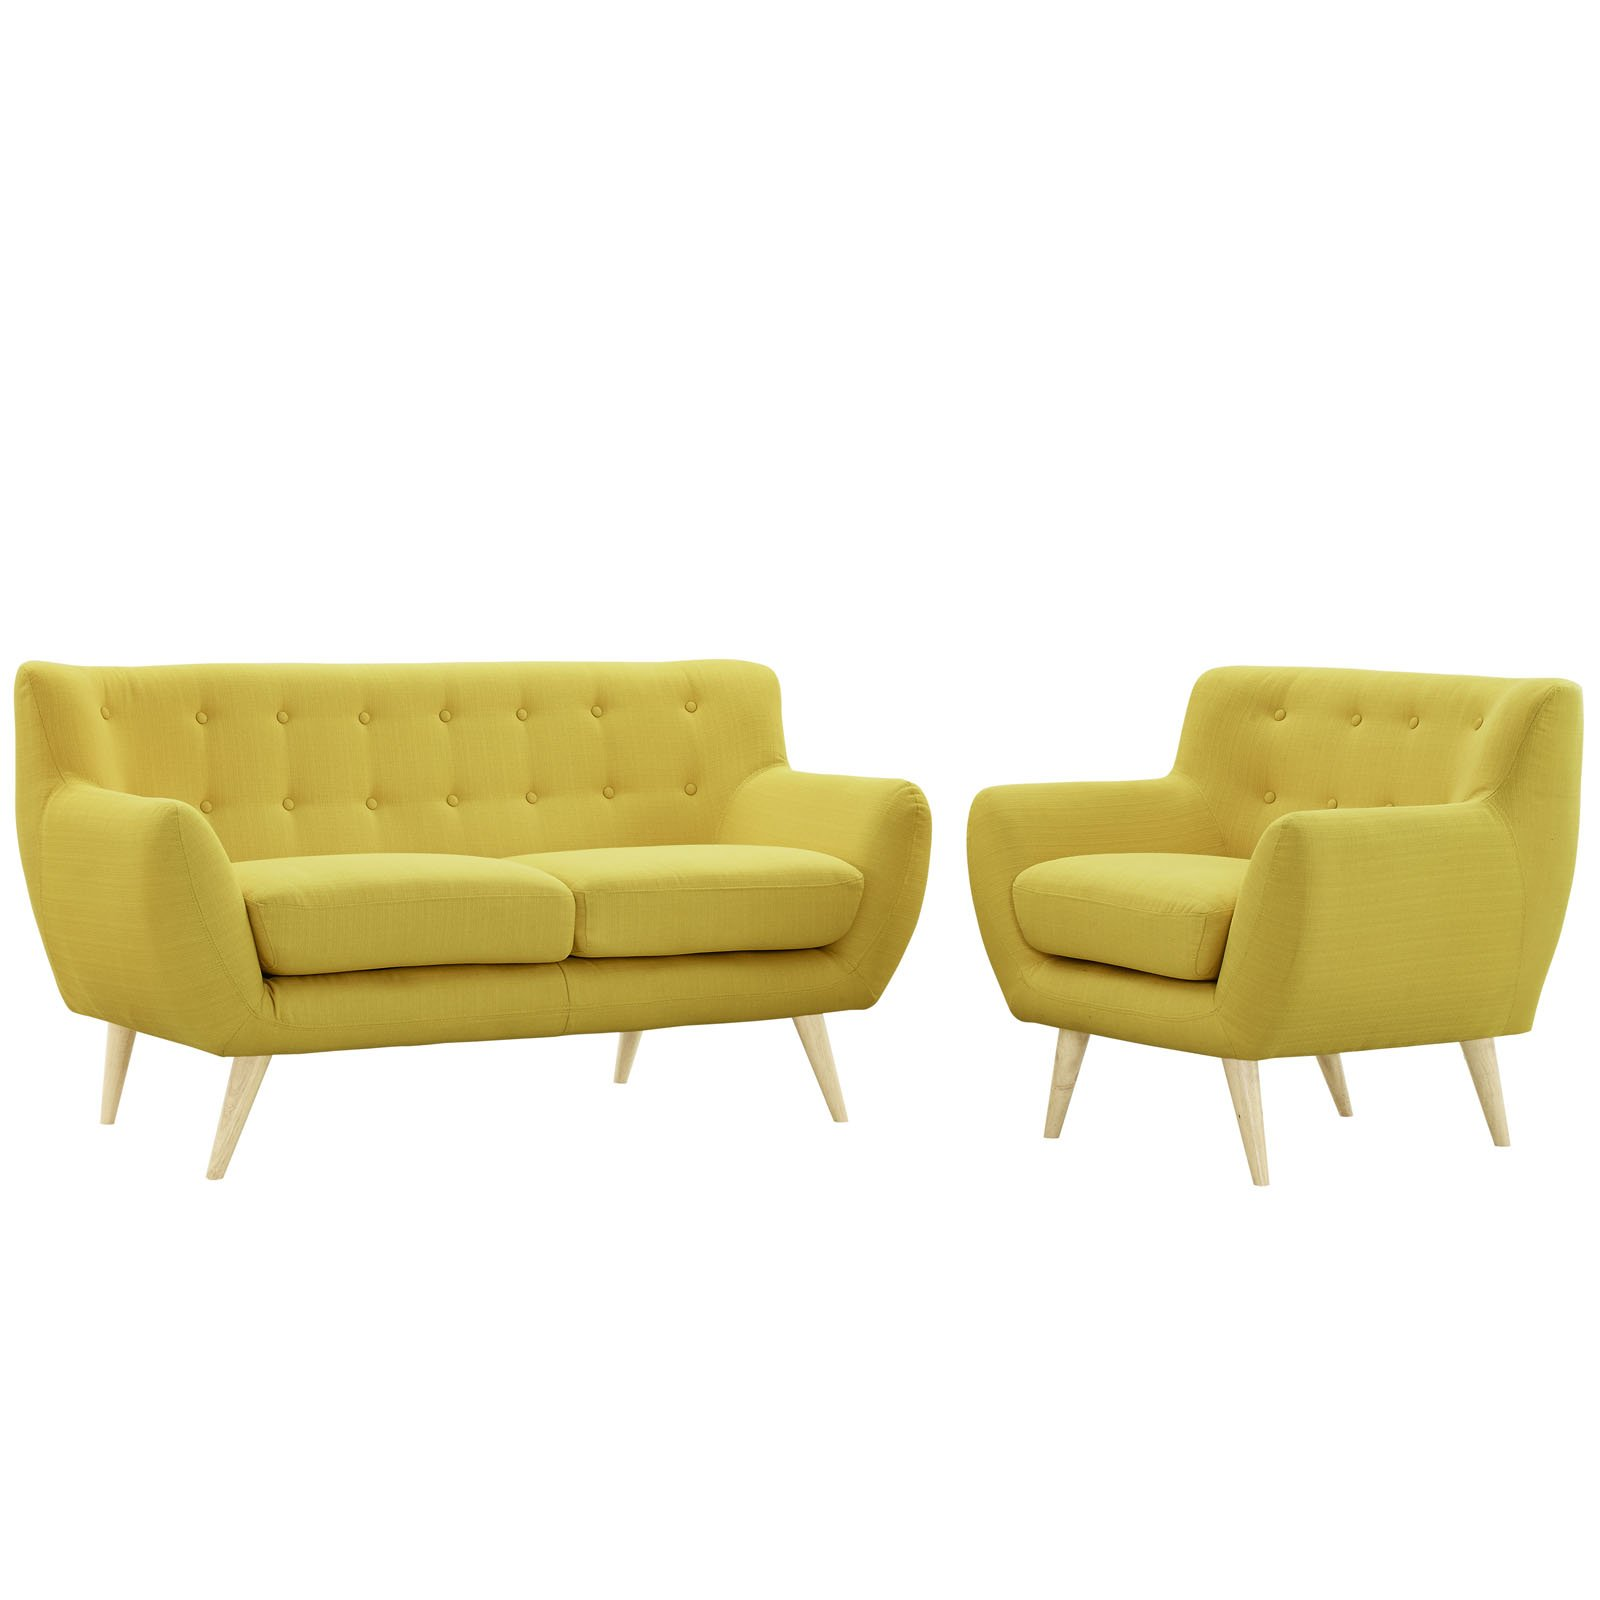 Modway Remark Mid-Century Modern Loveseat and Armchair Living Room Furniture with Upholstered Fabric in Sunny by Modway